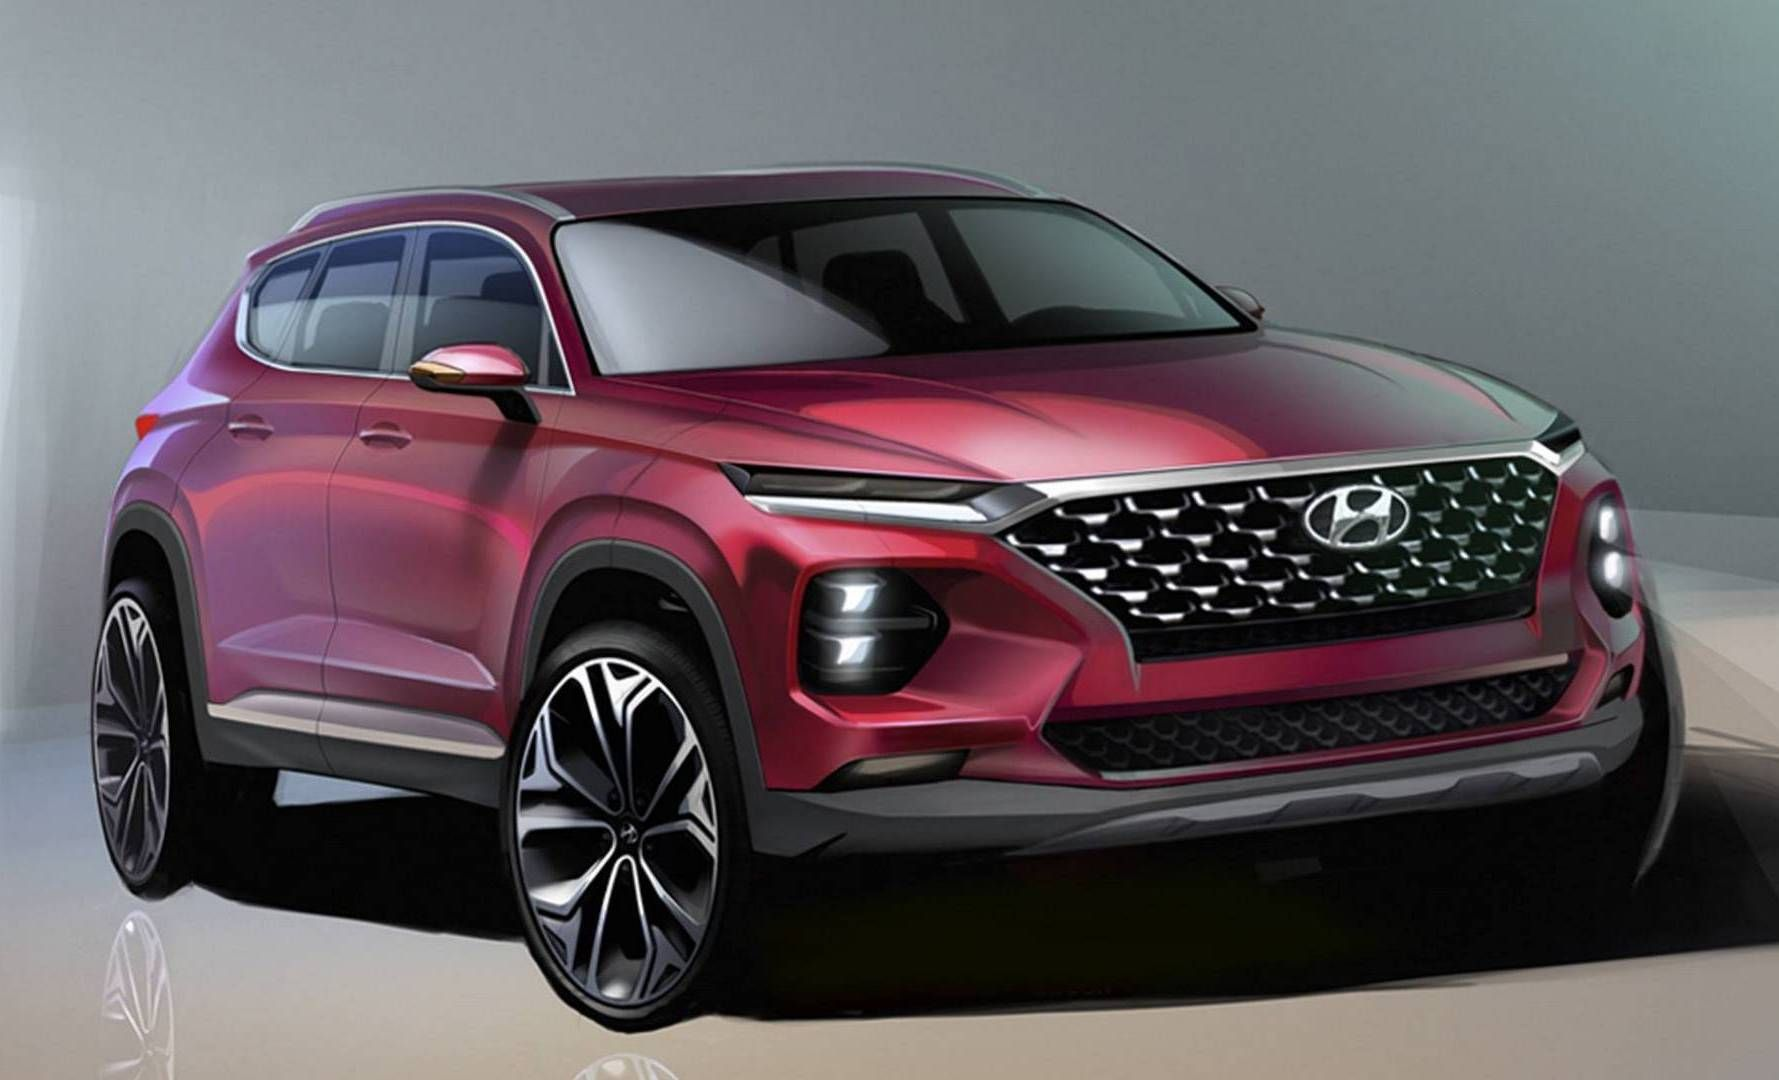 Innenausstattung Hyundai Kona Mundo Quatro Rodas Exclusive Hyundai The First Images Of Th